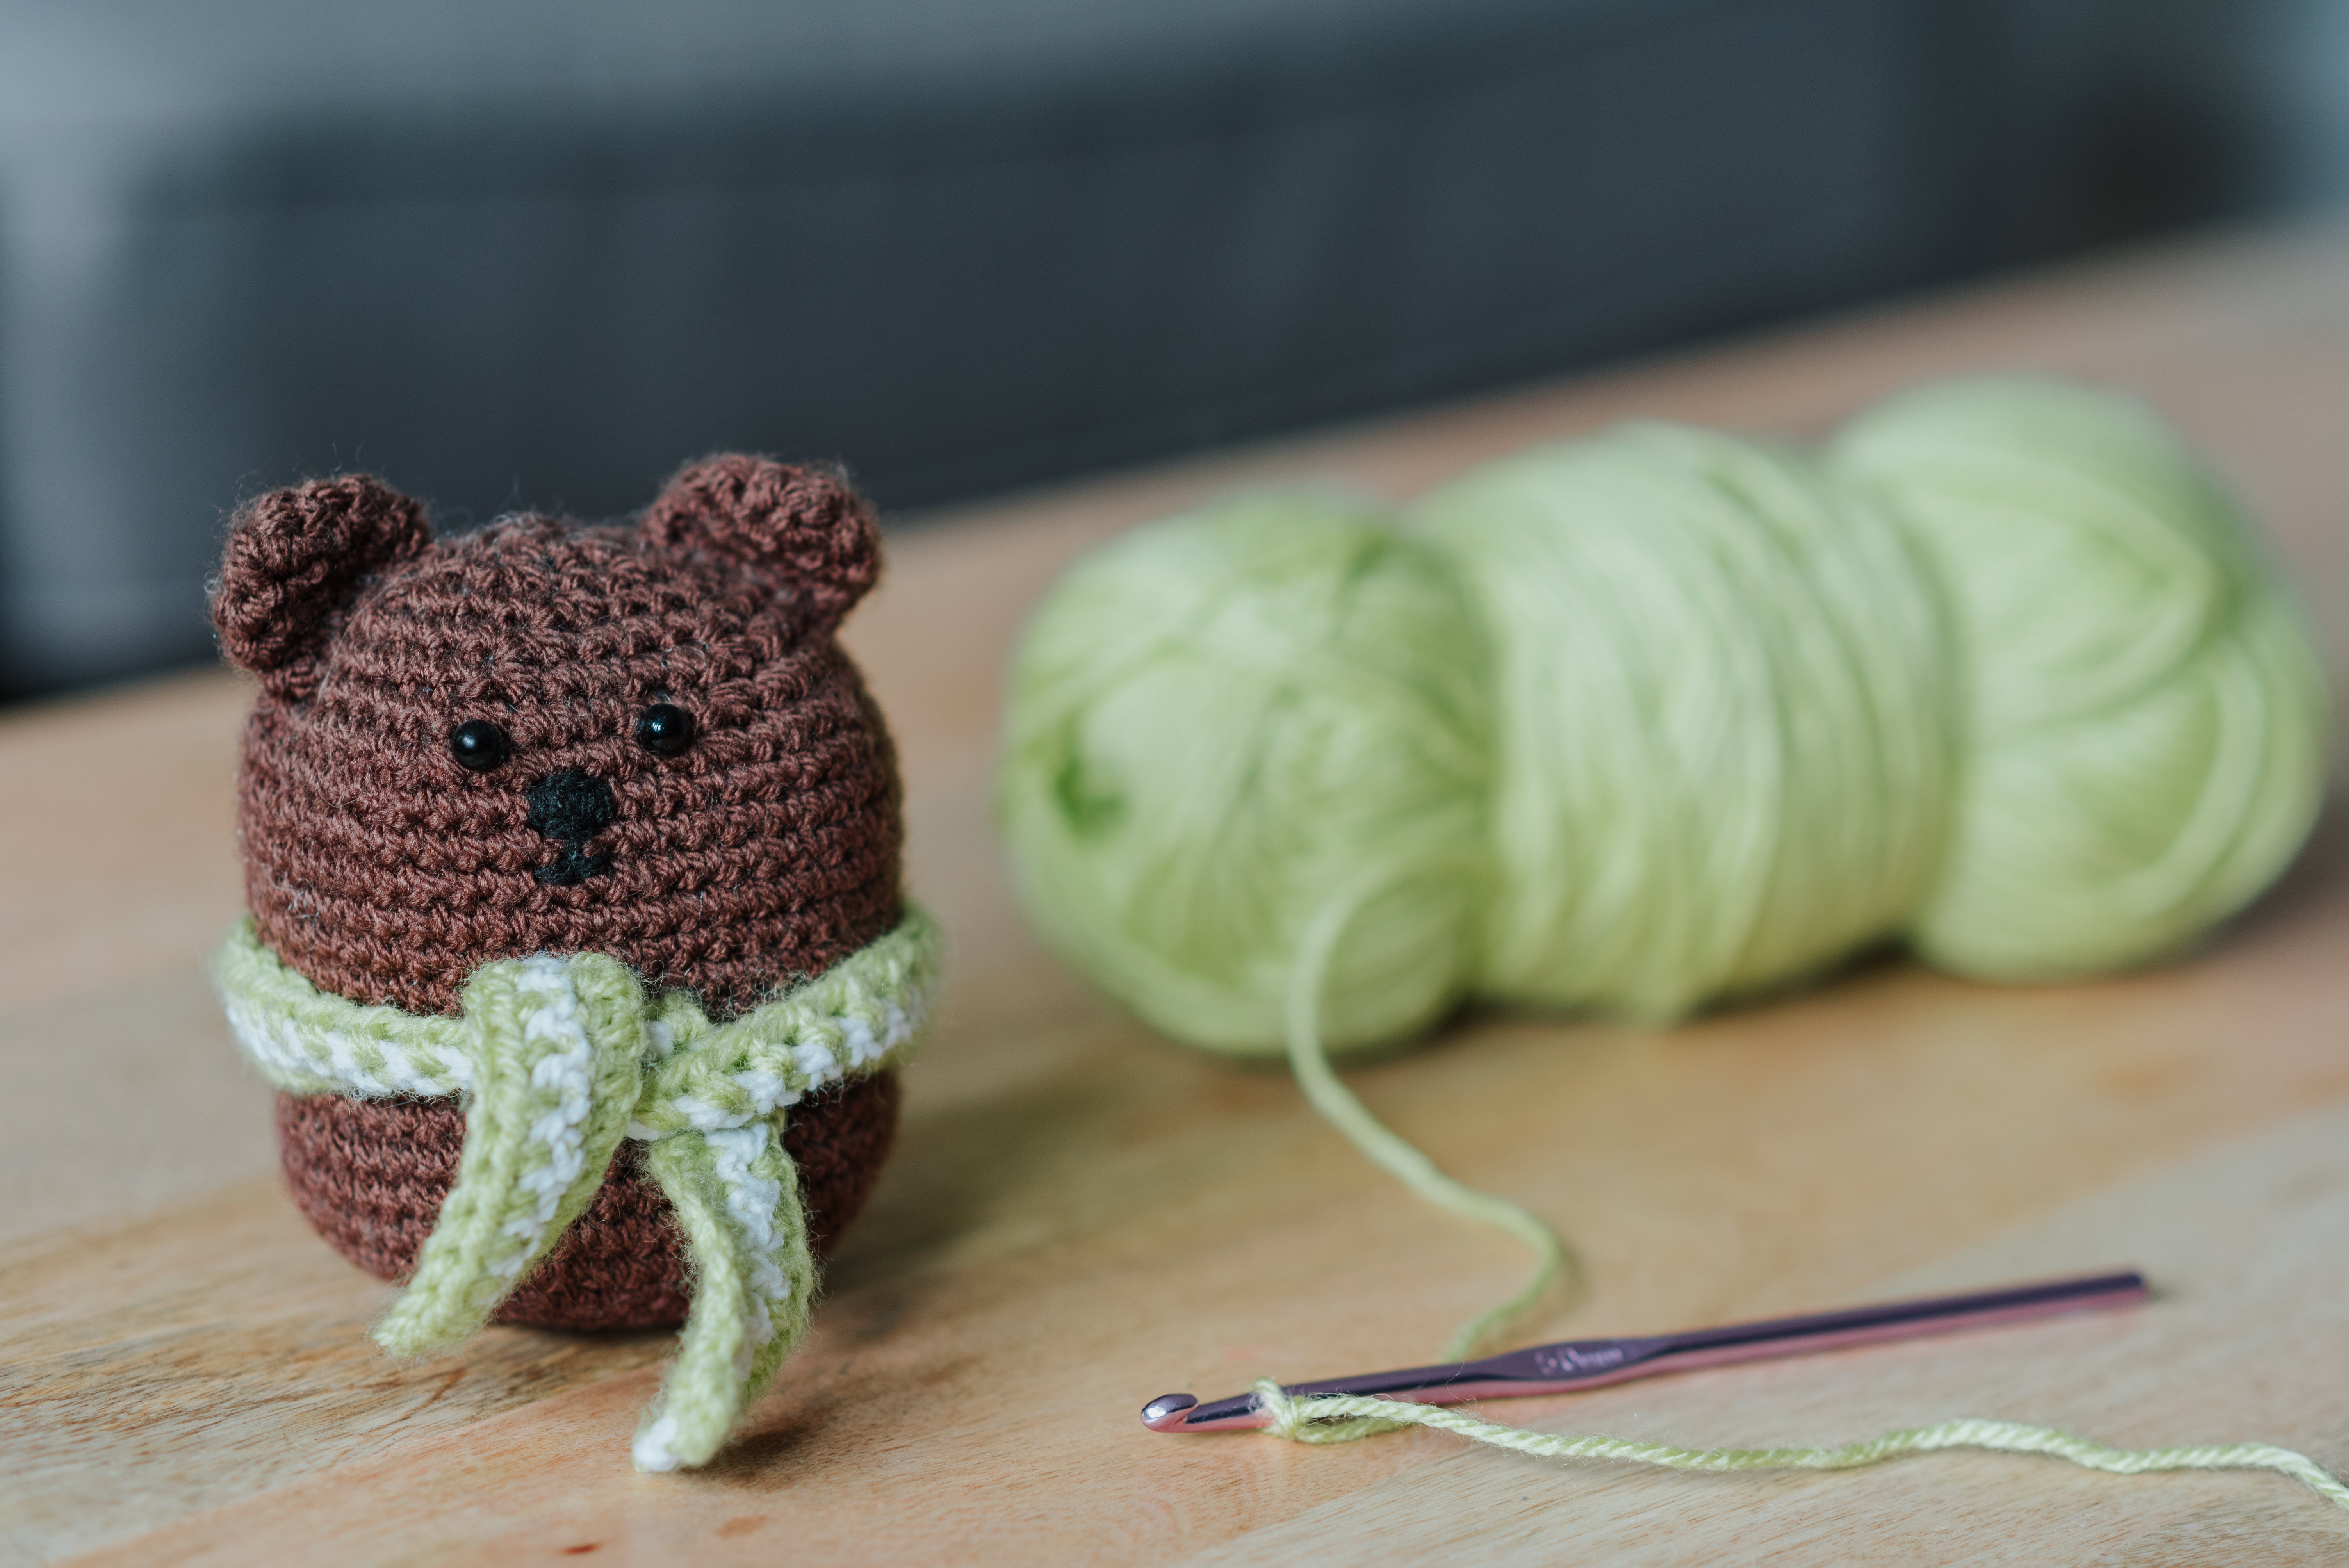 Photo of a crochet bear and crocheting supplies. Photo courtesy of Anete Lusina on Pexels.